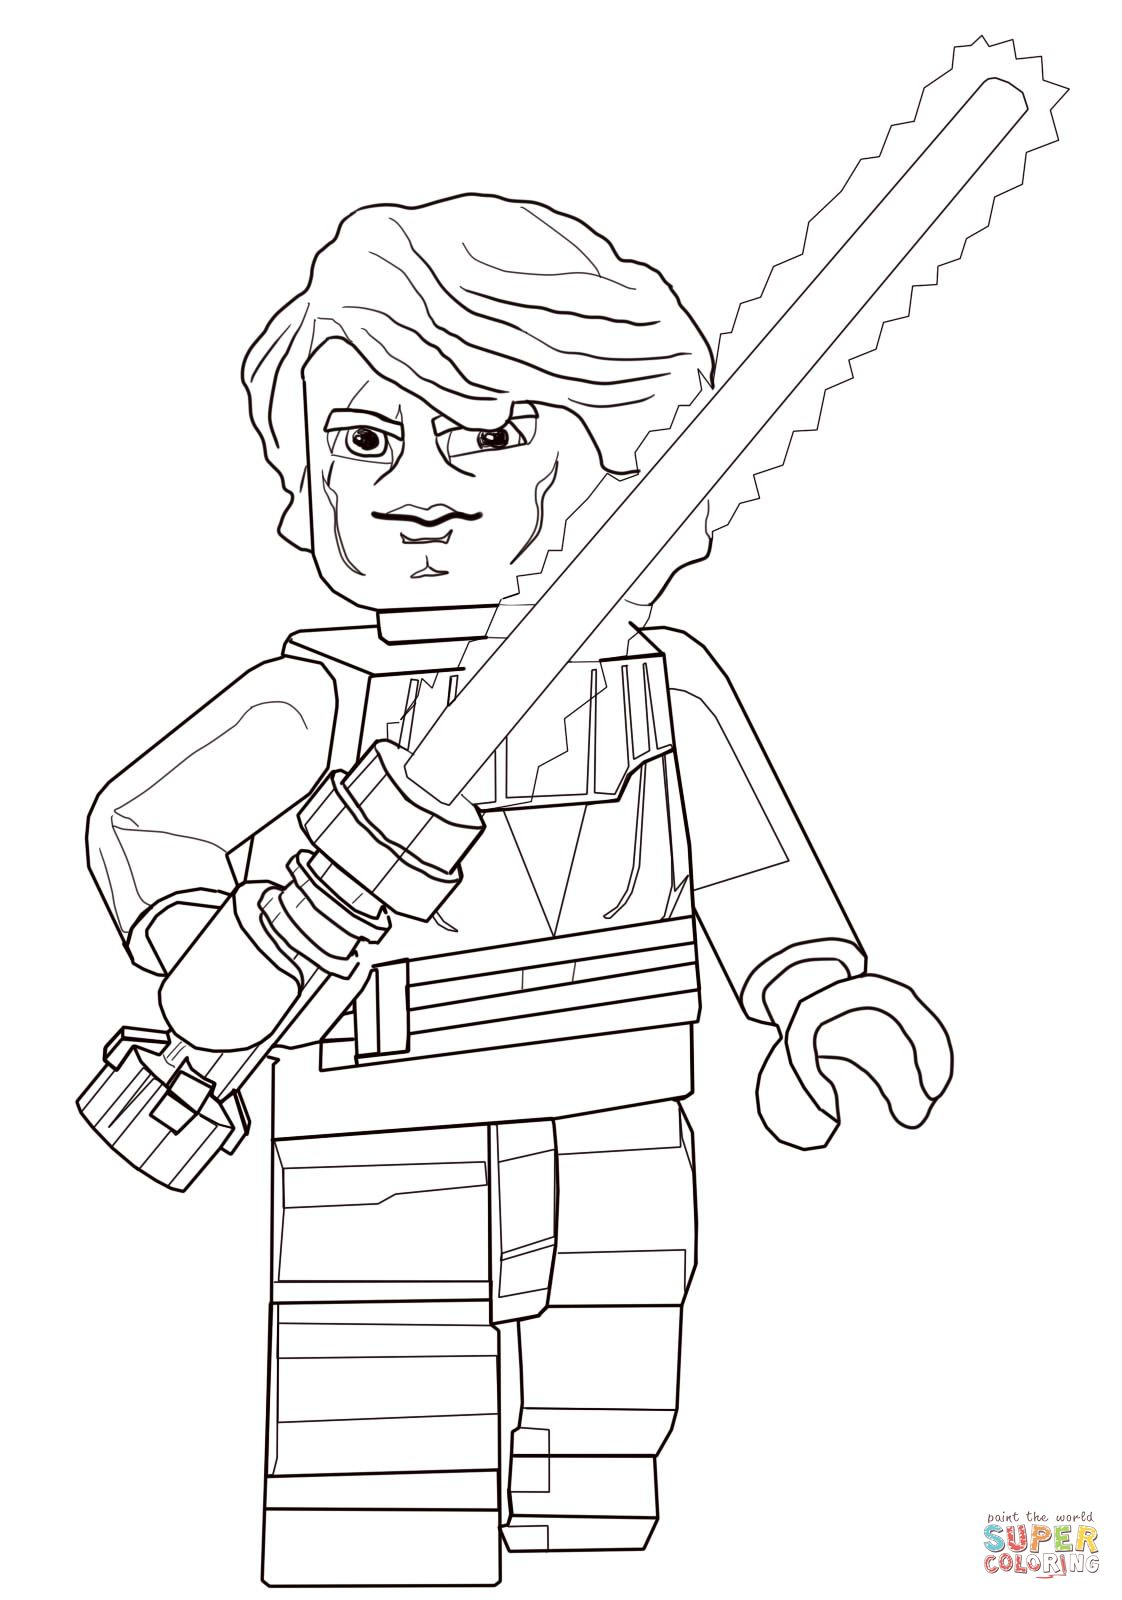 Lego Star Wars Anakin Skywalker Coloring Page Supercoloring Com